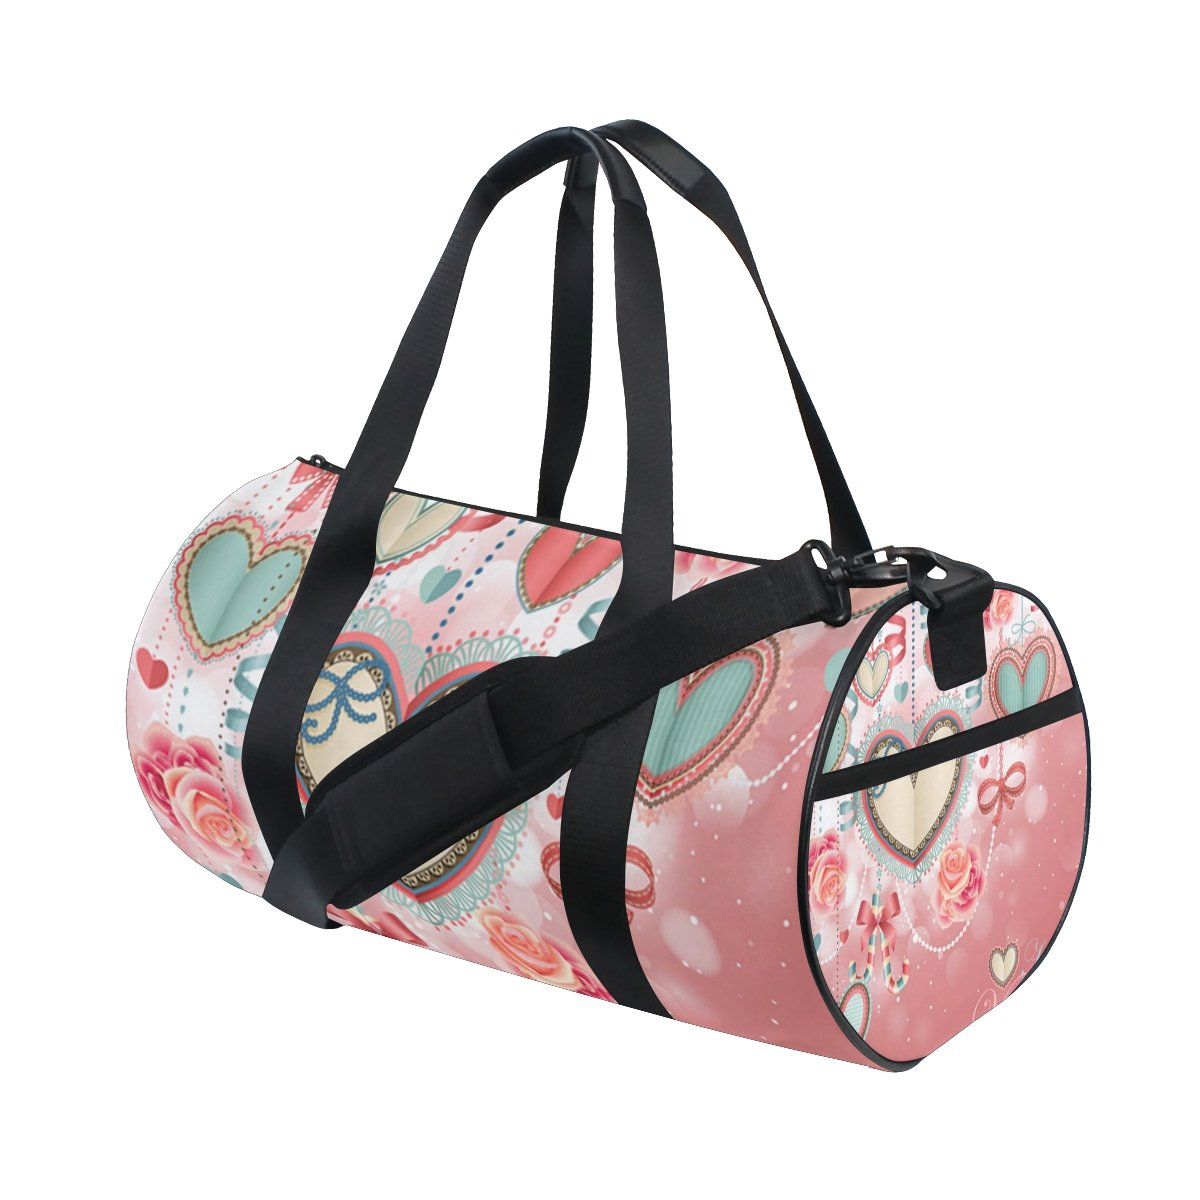 U LIFE Happy Valentines Day Love You Floral Roses Hearts Sports Gym Shoulder Handy Duffel Bags for Women Men Kids Boys Girls